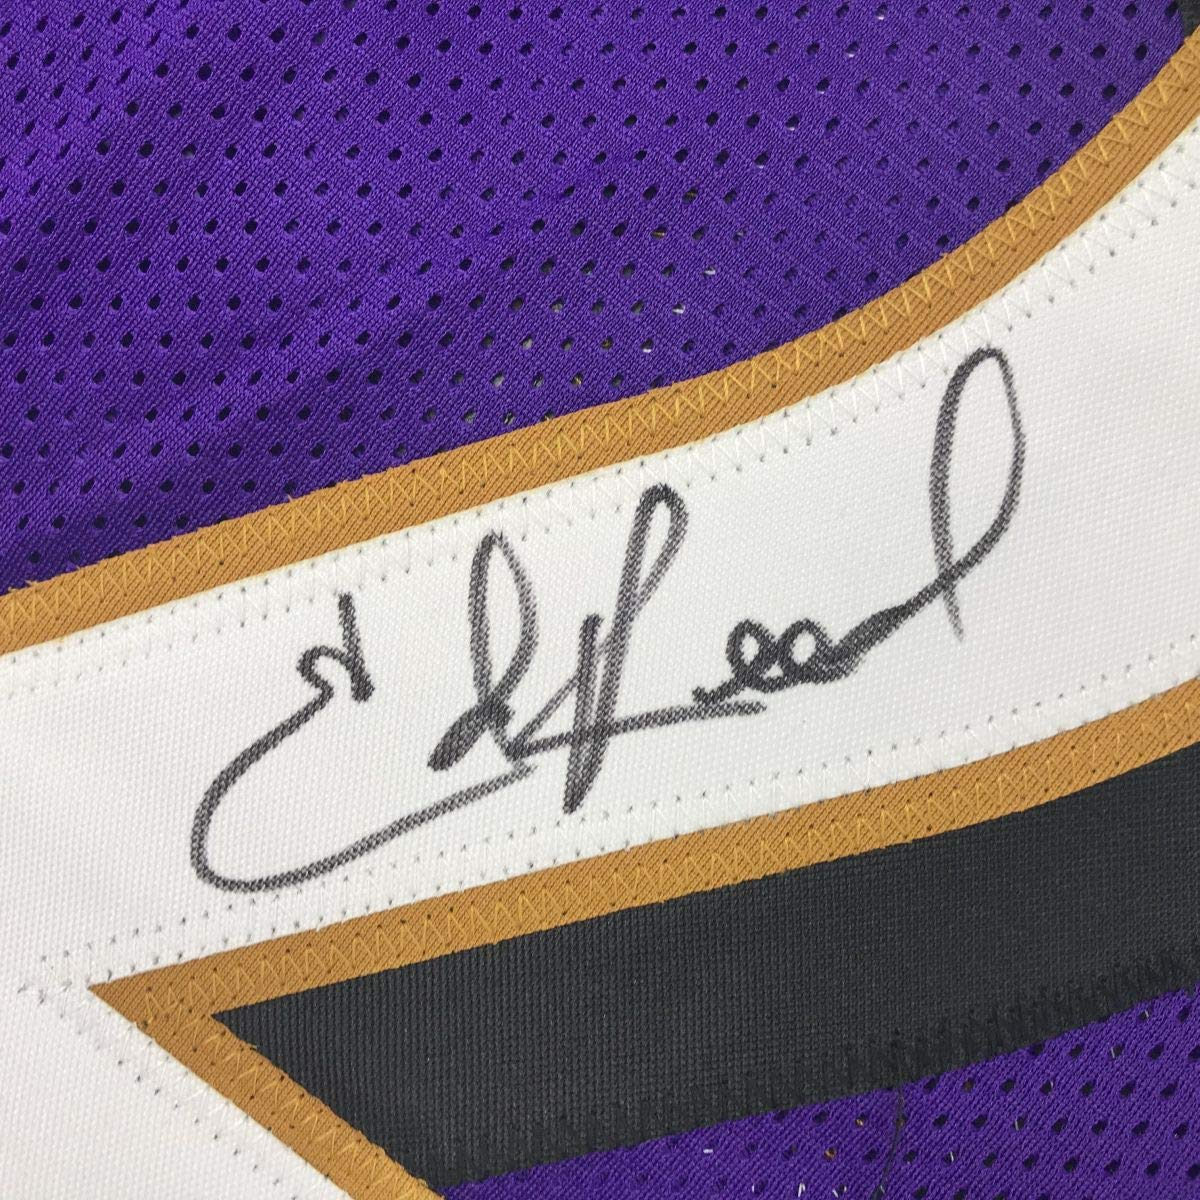 Autographed//Signed Ed Reed Baltimore Purple Football Jersey JSA COA